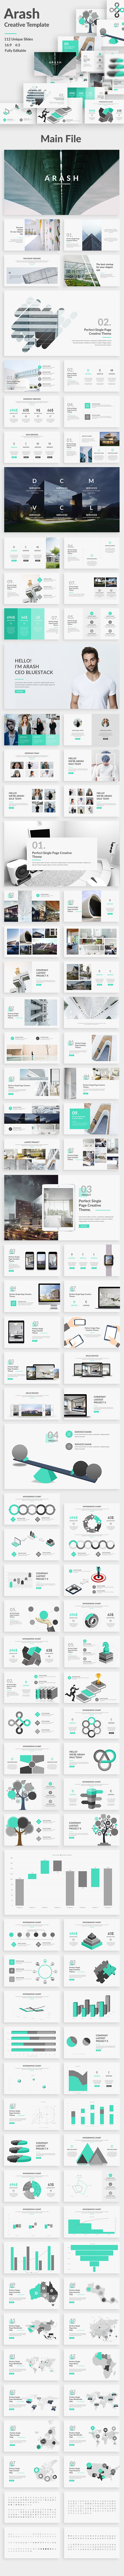 GraphicRiver Arash Creative Google Slide Template 20390404